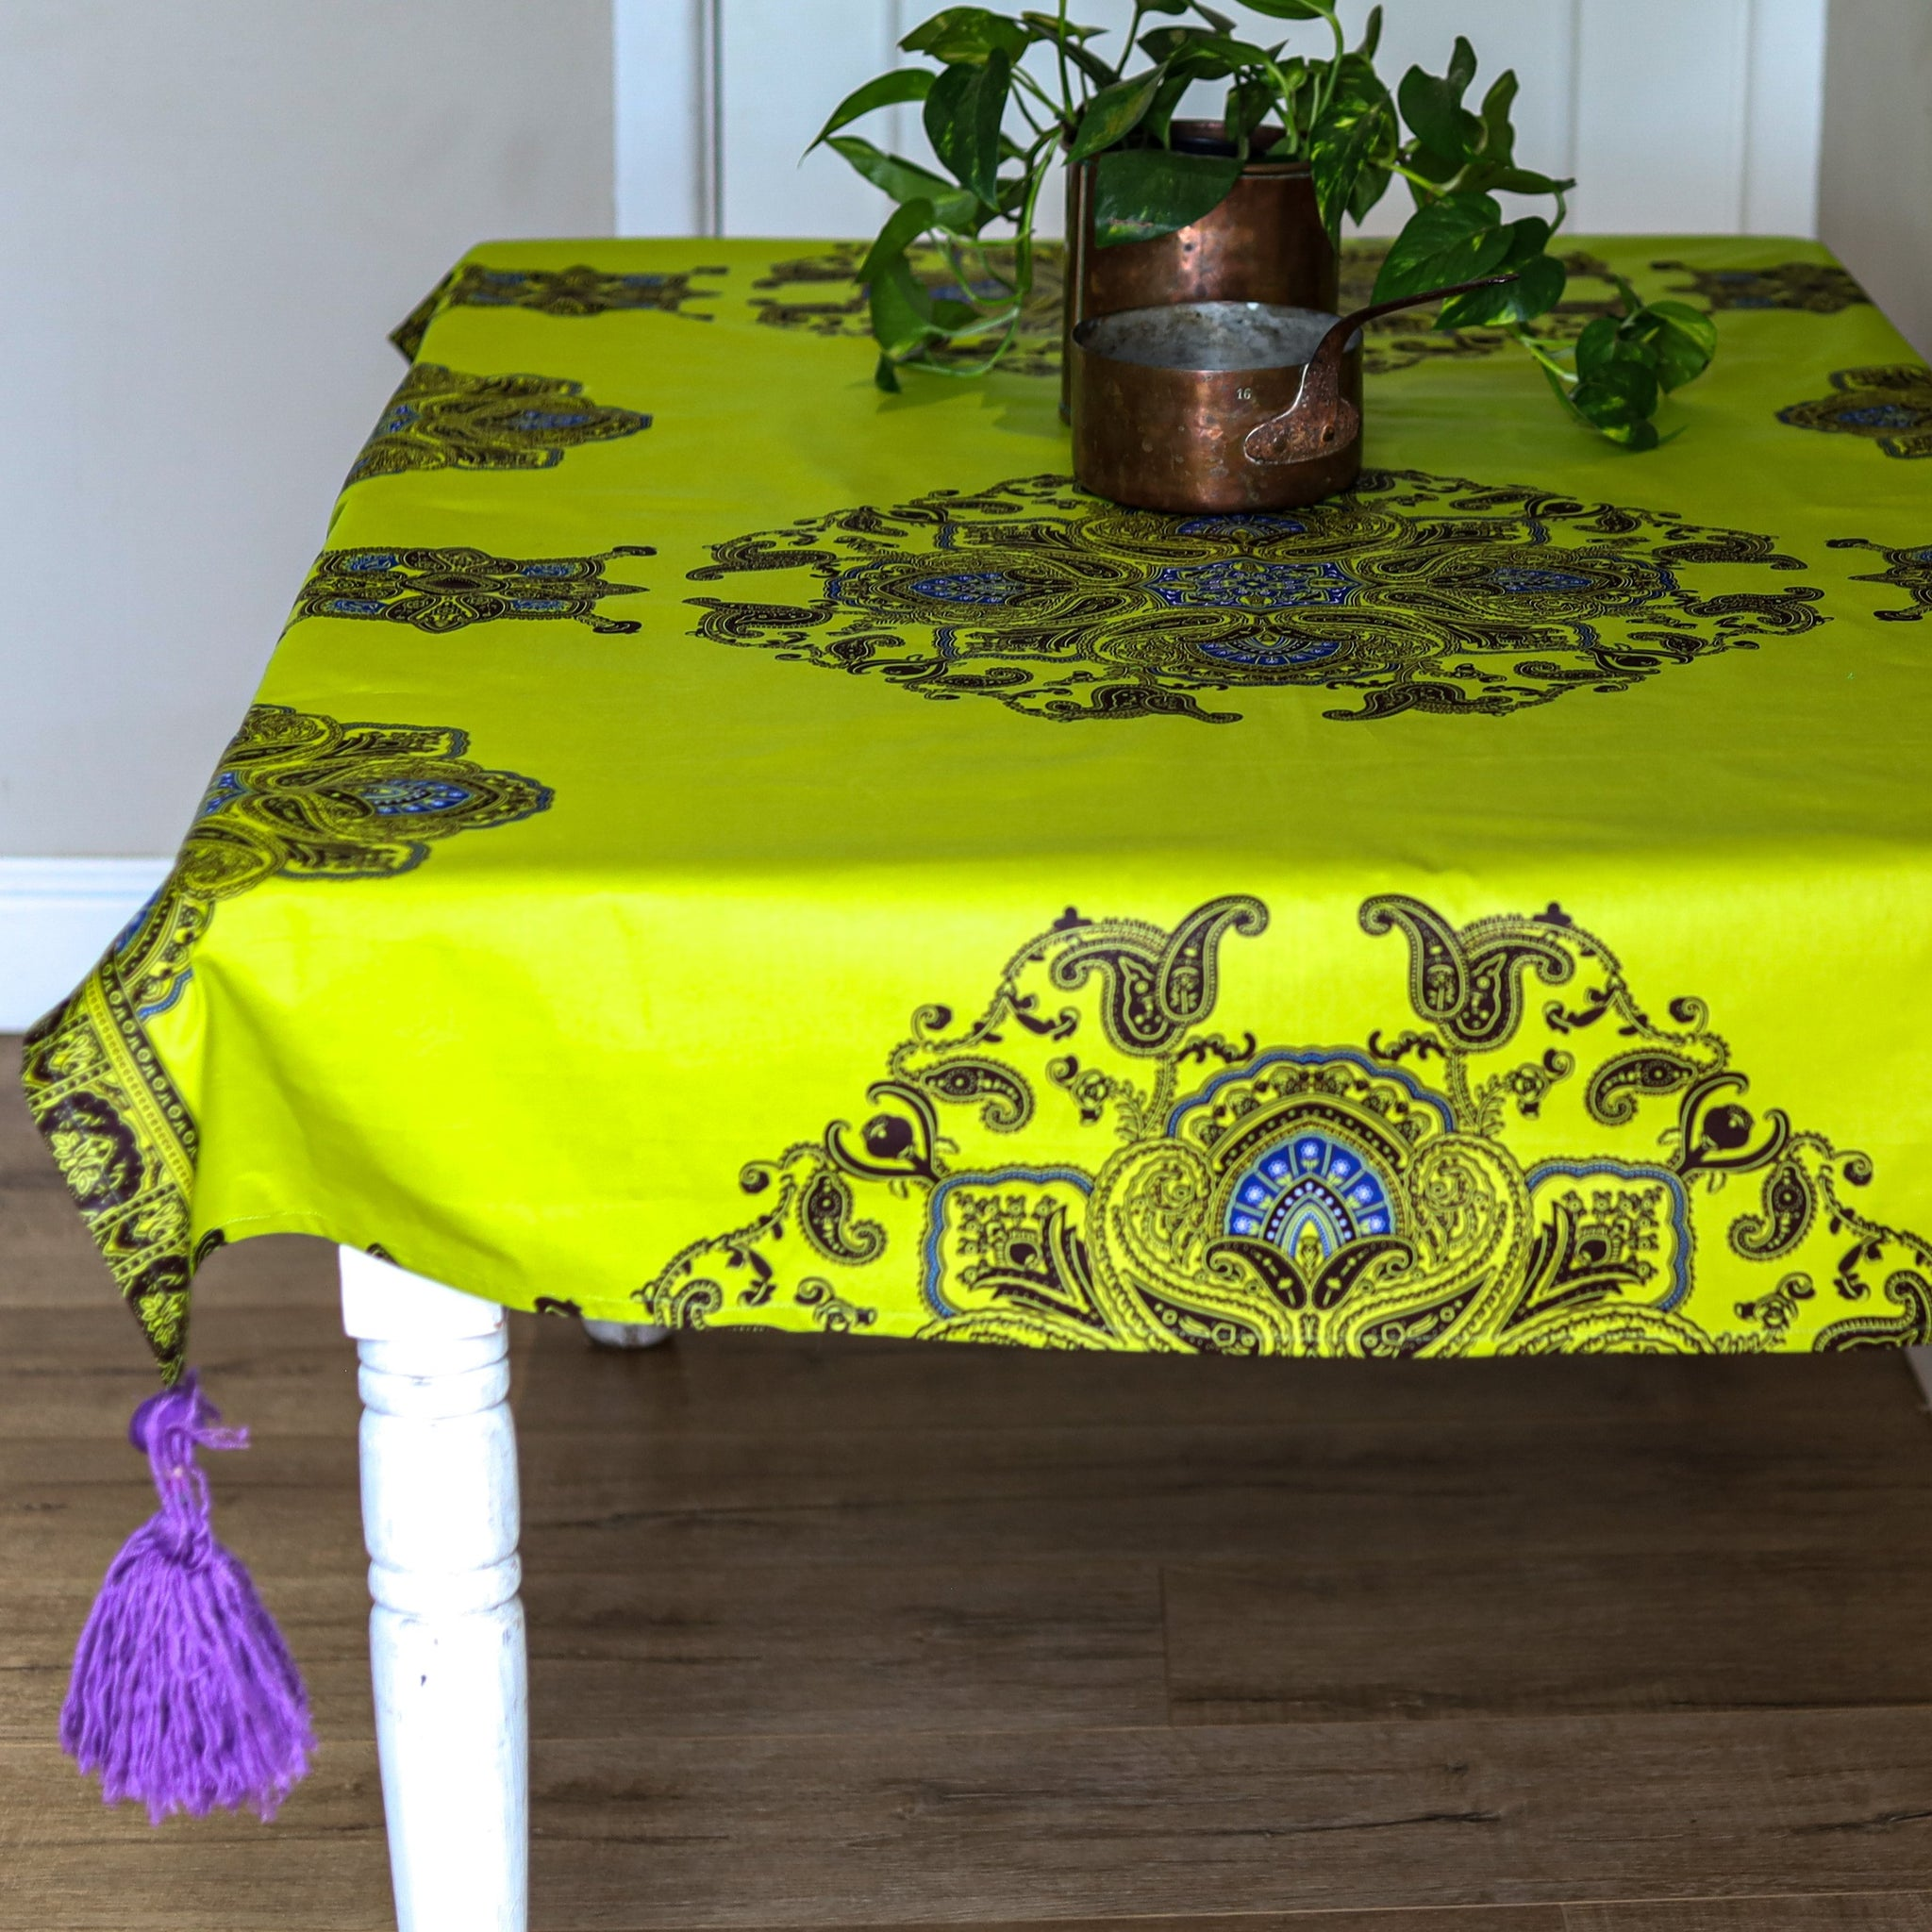 tassled table runner: rwanda